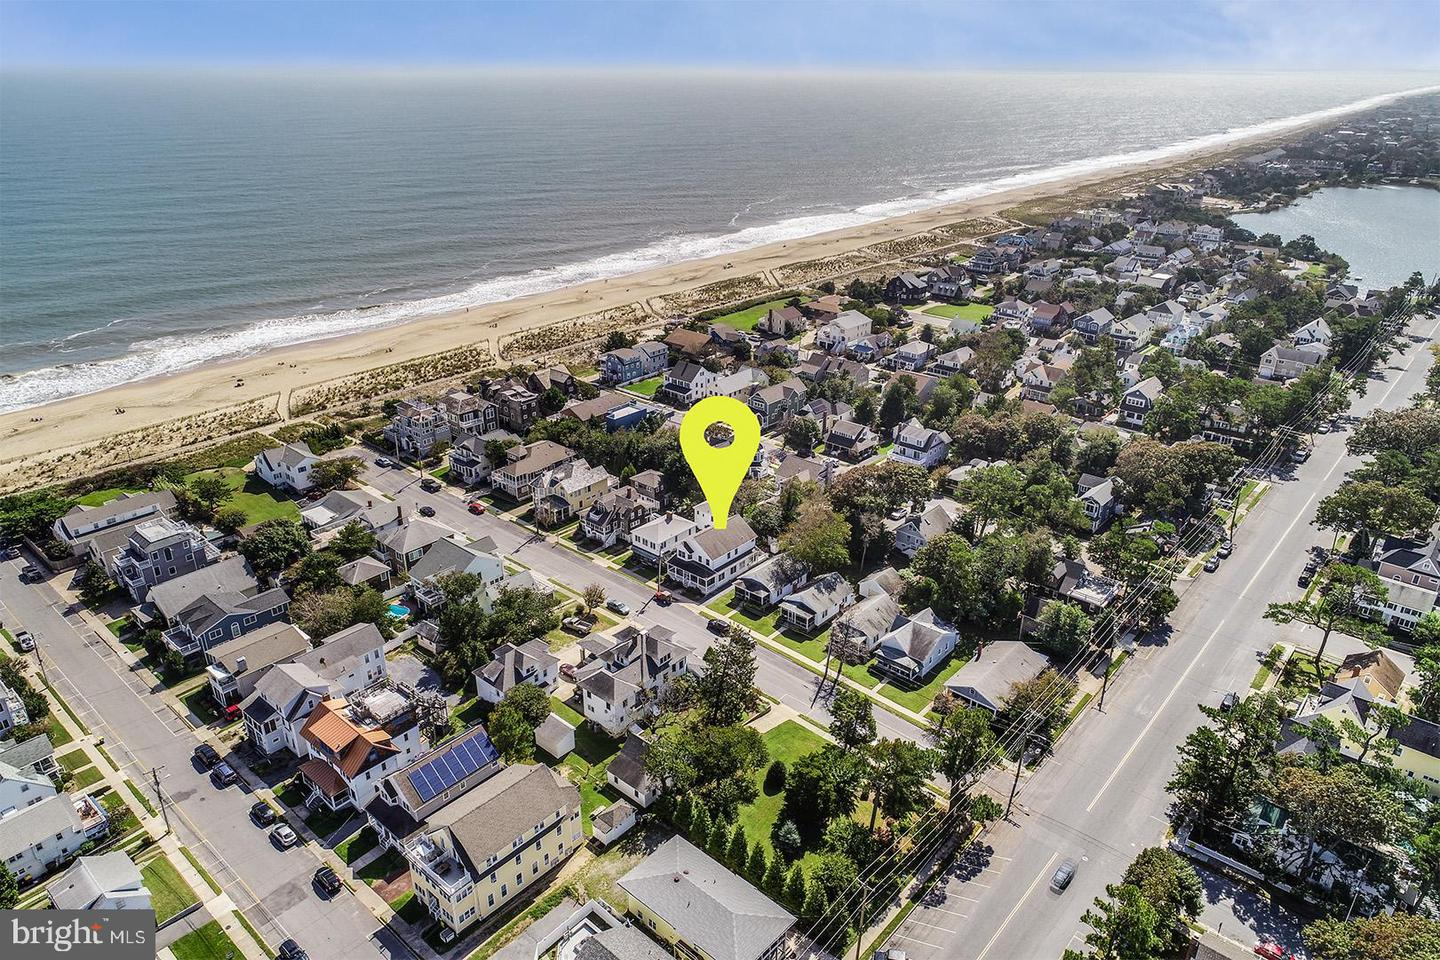 DESU139874-301711161768-2019-05-16-07-32-35 Rehoboth Beach Real Estate - Sussex County, DE MLS Listings - Rehoboth Beach Real Estate - Bryce Lingo and Shaun Tull REALTORS, Rehoboth Beach, Delaware